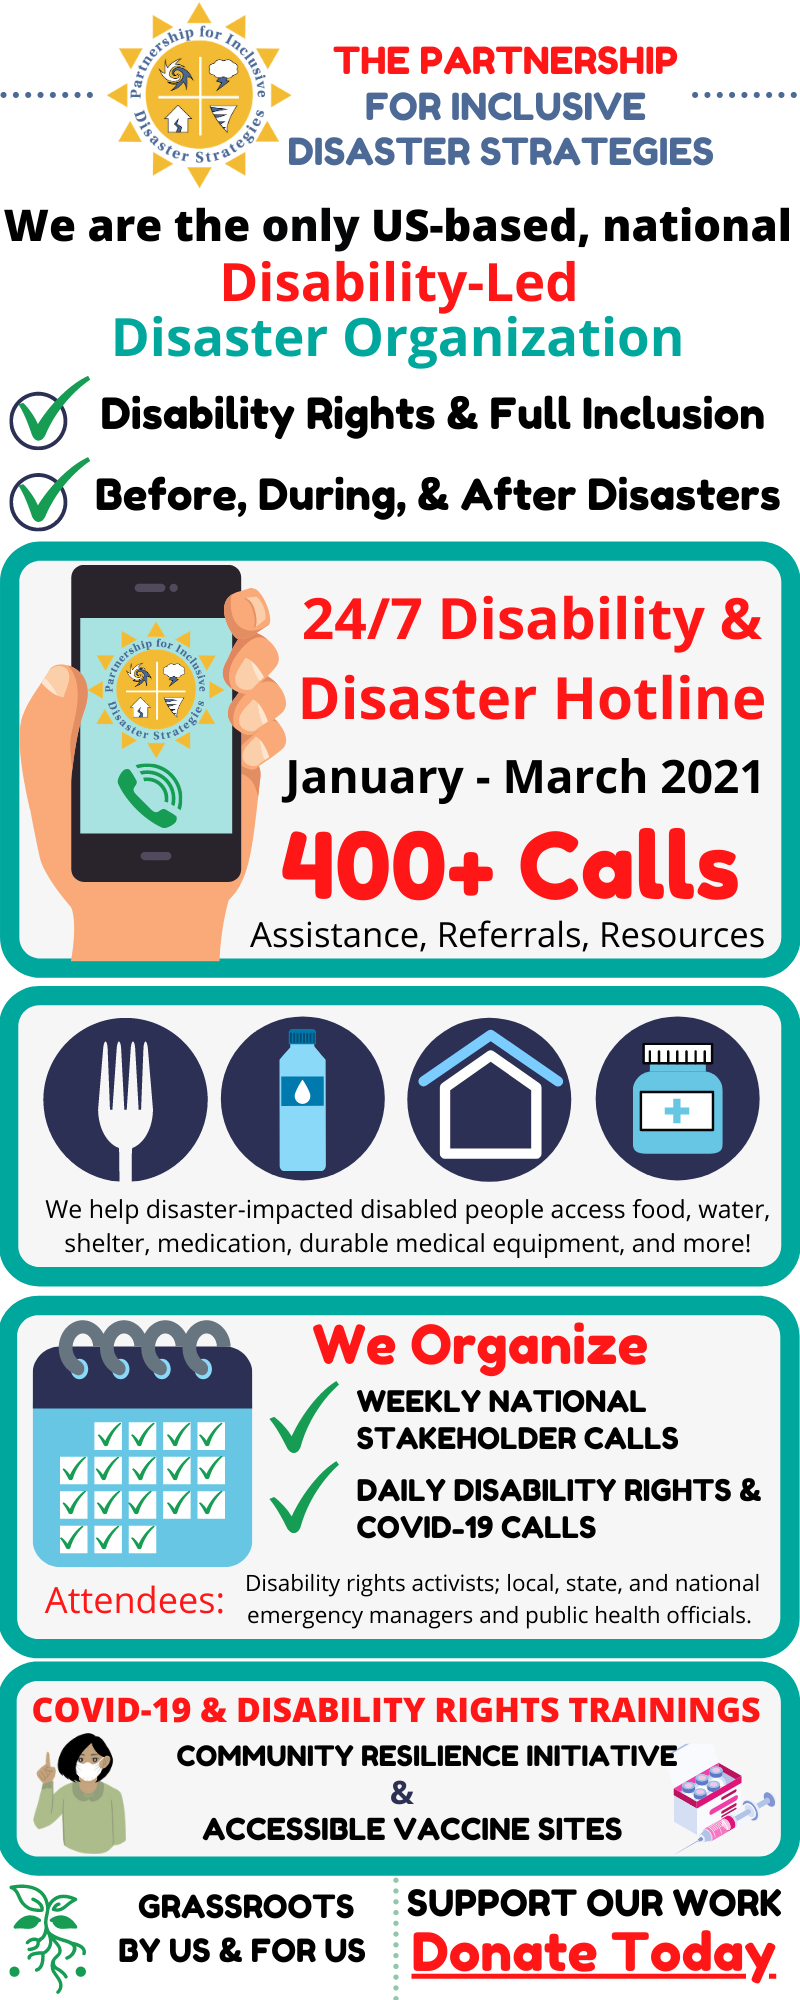 Image Description: An Infographic with 7 frames:   Frame 1:  A yellow sun logo with inset icons representing hurricanes, storms, tornados, and earthquakes. Text: The Partnership For inclusive Disaster Strategies  We are the only US-based, national, [red text] Disability-led, [teal text] Disaster Organization. Green checkmark: black text: Disability Rights & Full Inclusion; Green Checkmark: text: Before, During, & After Disasters.   Frame 2: Illustration of a hand holding a cellphone with The Partnership yellow sun logo and a green phone ringing icon. Red Text: 24/7 Disability & Disaster Hotline; black text: January - March 2021; Big font, red text: 400+ calls. Smaller text: Assistance, Referrals, Resources.  Frame 3: 4 navy blue circles with icons representing: food, water, shelter, medication. Text underneath: We help disaster-impacted disabled people access food, water, shelter, medication, durable medical equipment, and more!  Frame 4: Image: A flip calendar with every single day marked off with a green checkmark. Next to the calendar, two green checkmarks. Checkmark 1 text: Weekly National  Stakeholder Calls; Checkmark 2 text: DAILY Disability Rights & COVID-19 Calls. Text: Attendees: Disability rights activists; local, state, and national emergency managers and public health officials.  Frame 5: 2 Images and text. Image 1: Illustration of a woman of color wearing a white mask, with her finger pointed up. Image 2: illustration of a box of vaccines with a syringe lying next to it. Red text: COVID-19 & DISABILITY RIGHTS TRAININGS. Black text: COMMUNITY RESILIENCE INITIATIVE & Accessible Vaccine Sites  Frame 6: Image: illustration of a green plant with long straggly roots; Text: Grassroots; For us, By us  Frame 7: Black text: Support our work; Red Text: Donate Today